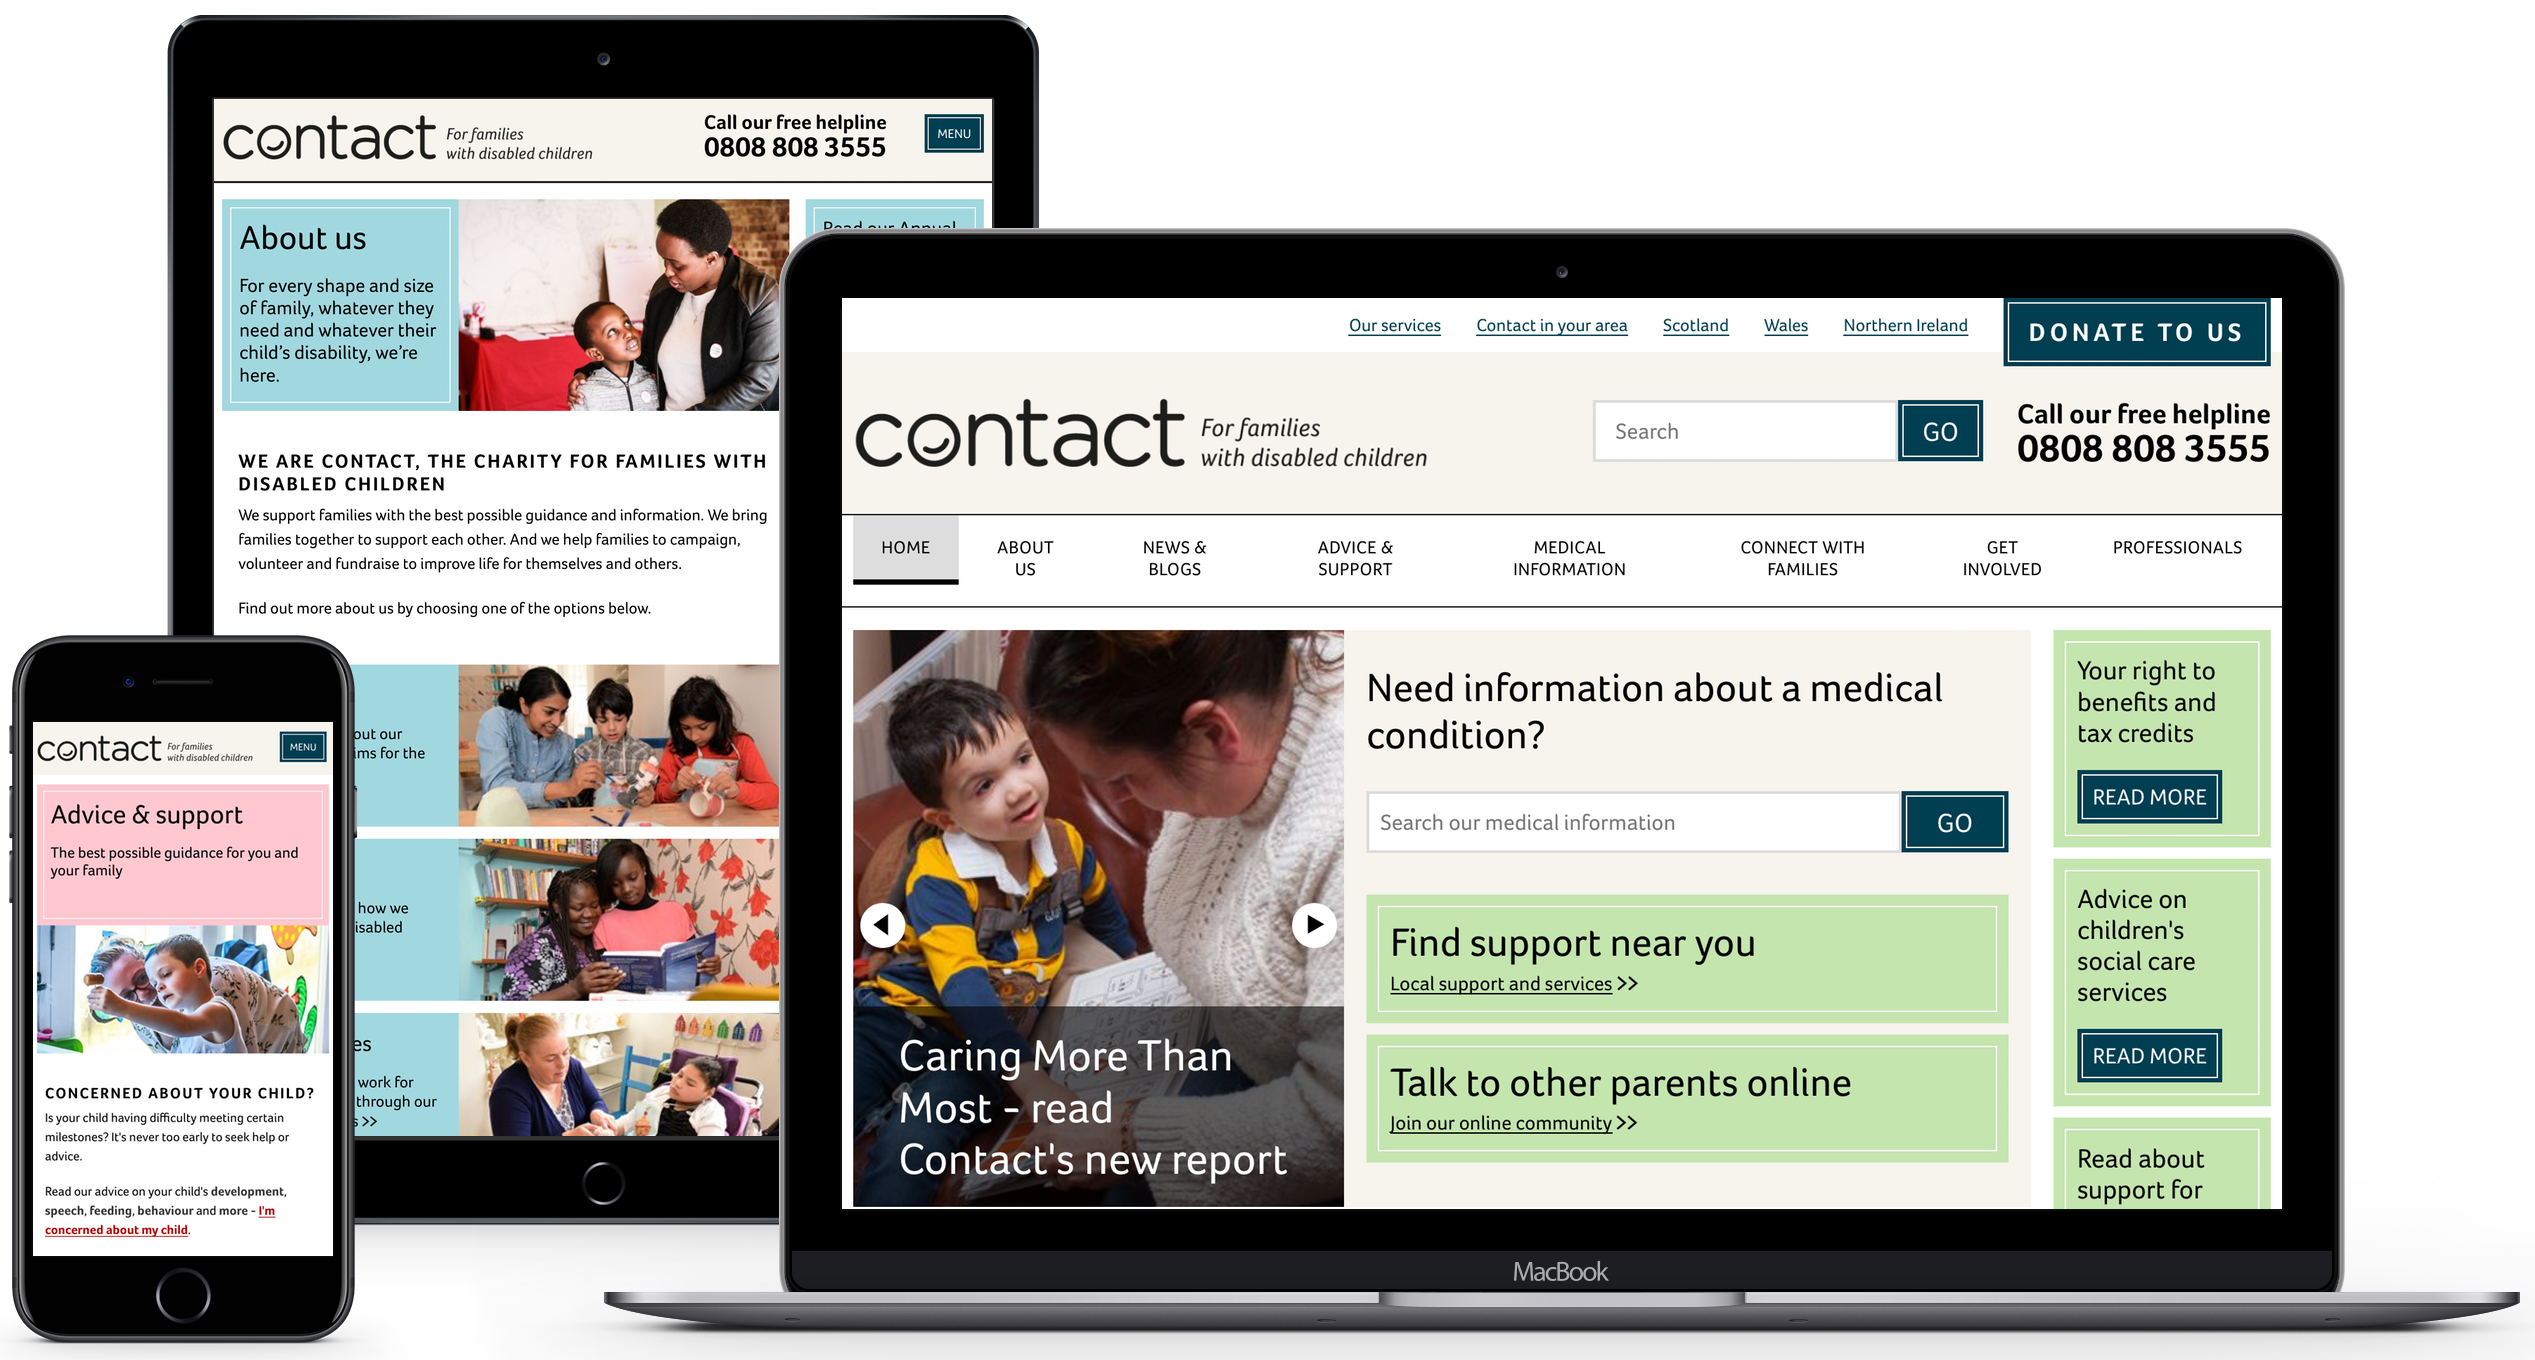 Contact a Family website displayed on iPhone, iPad and Macbook